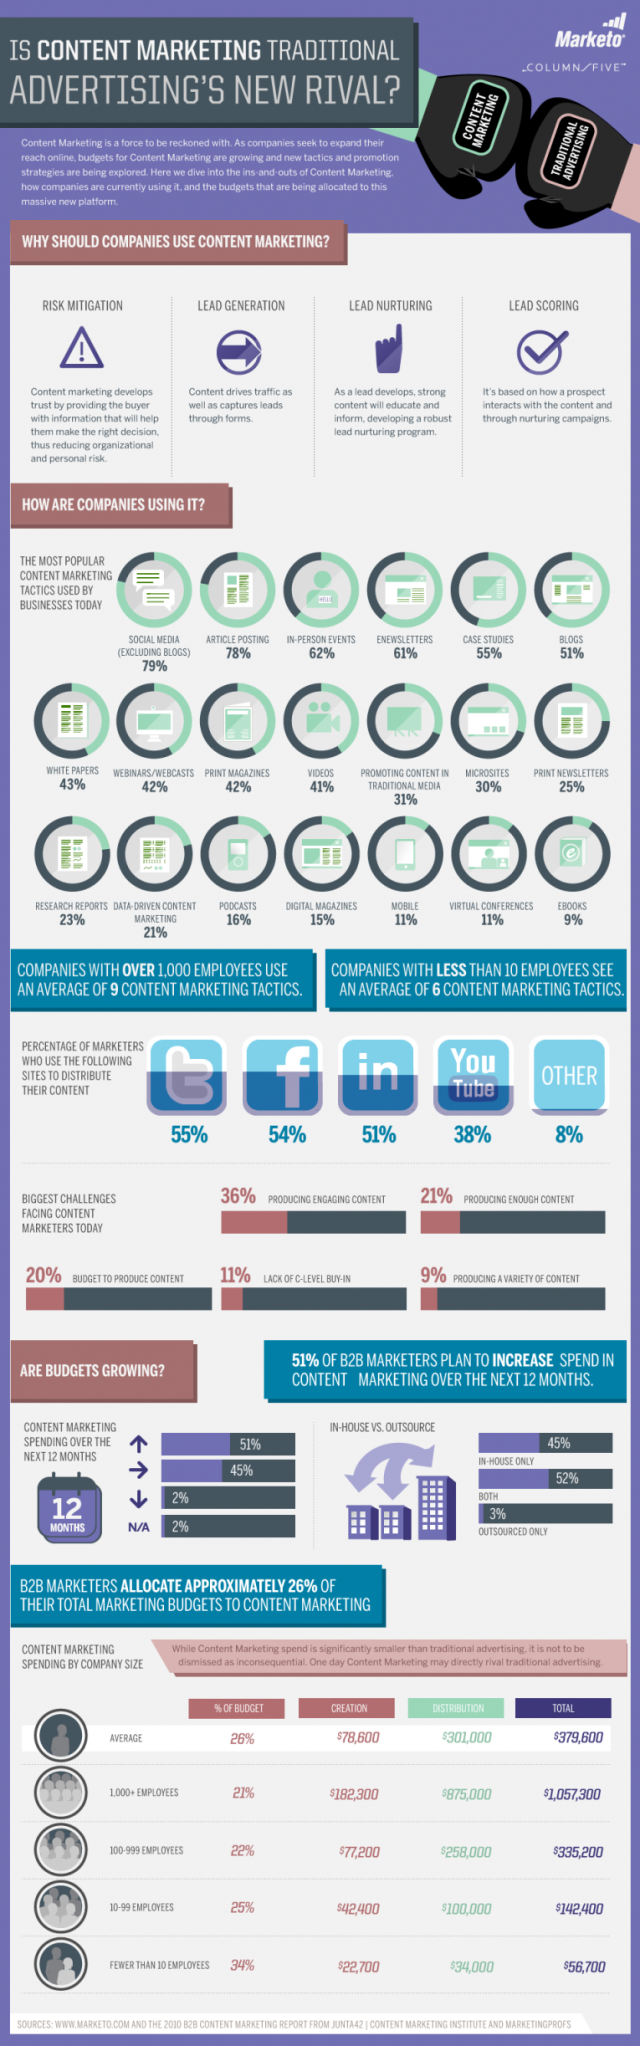 SetWidth765-Content-Marketing-Infographic-by-Marketo